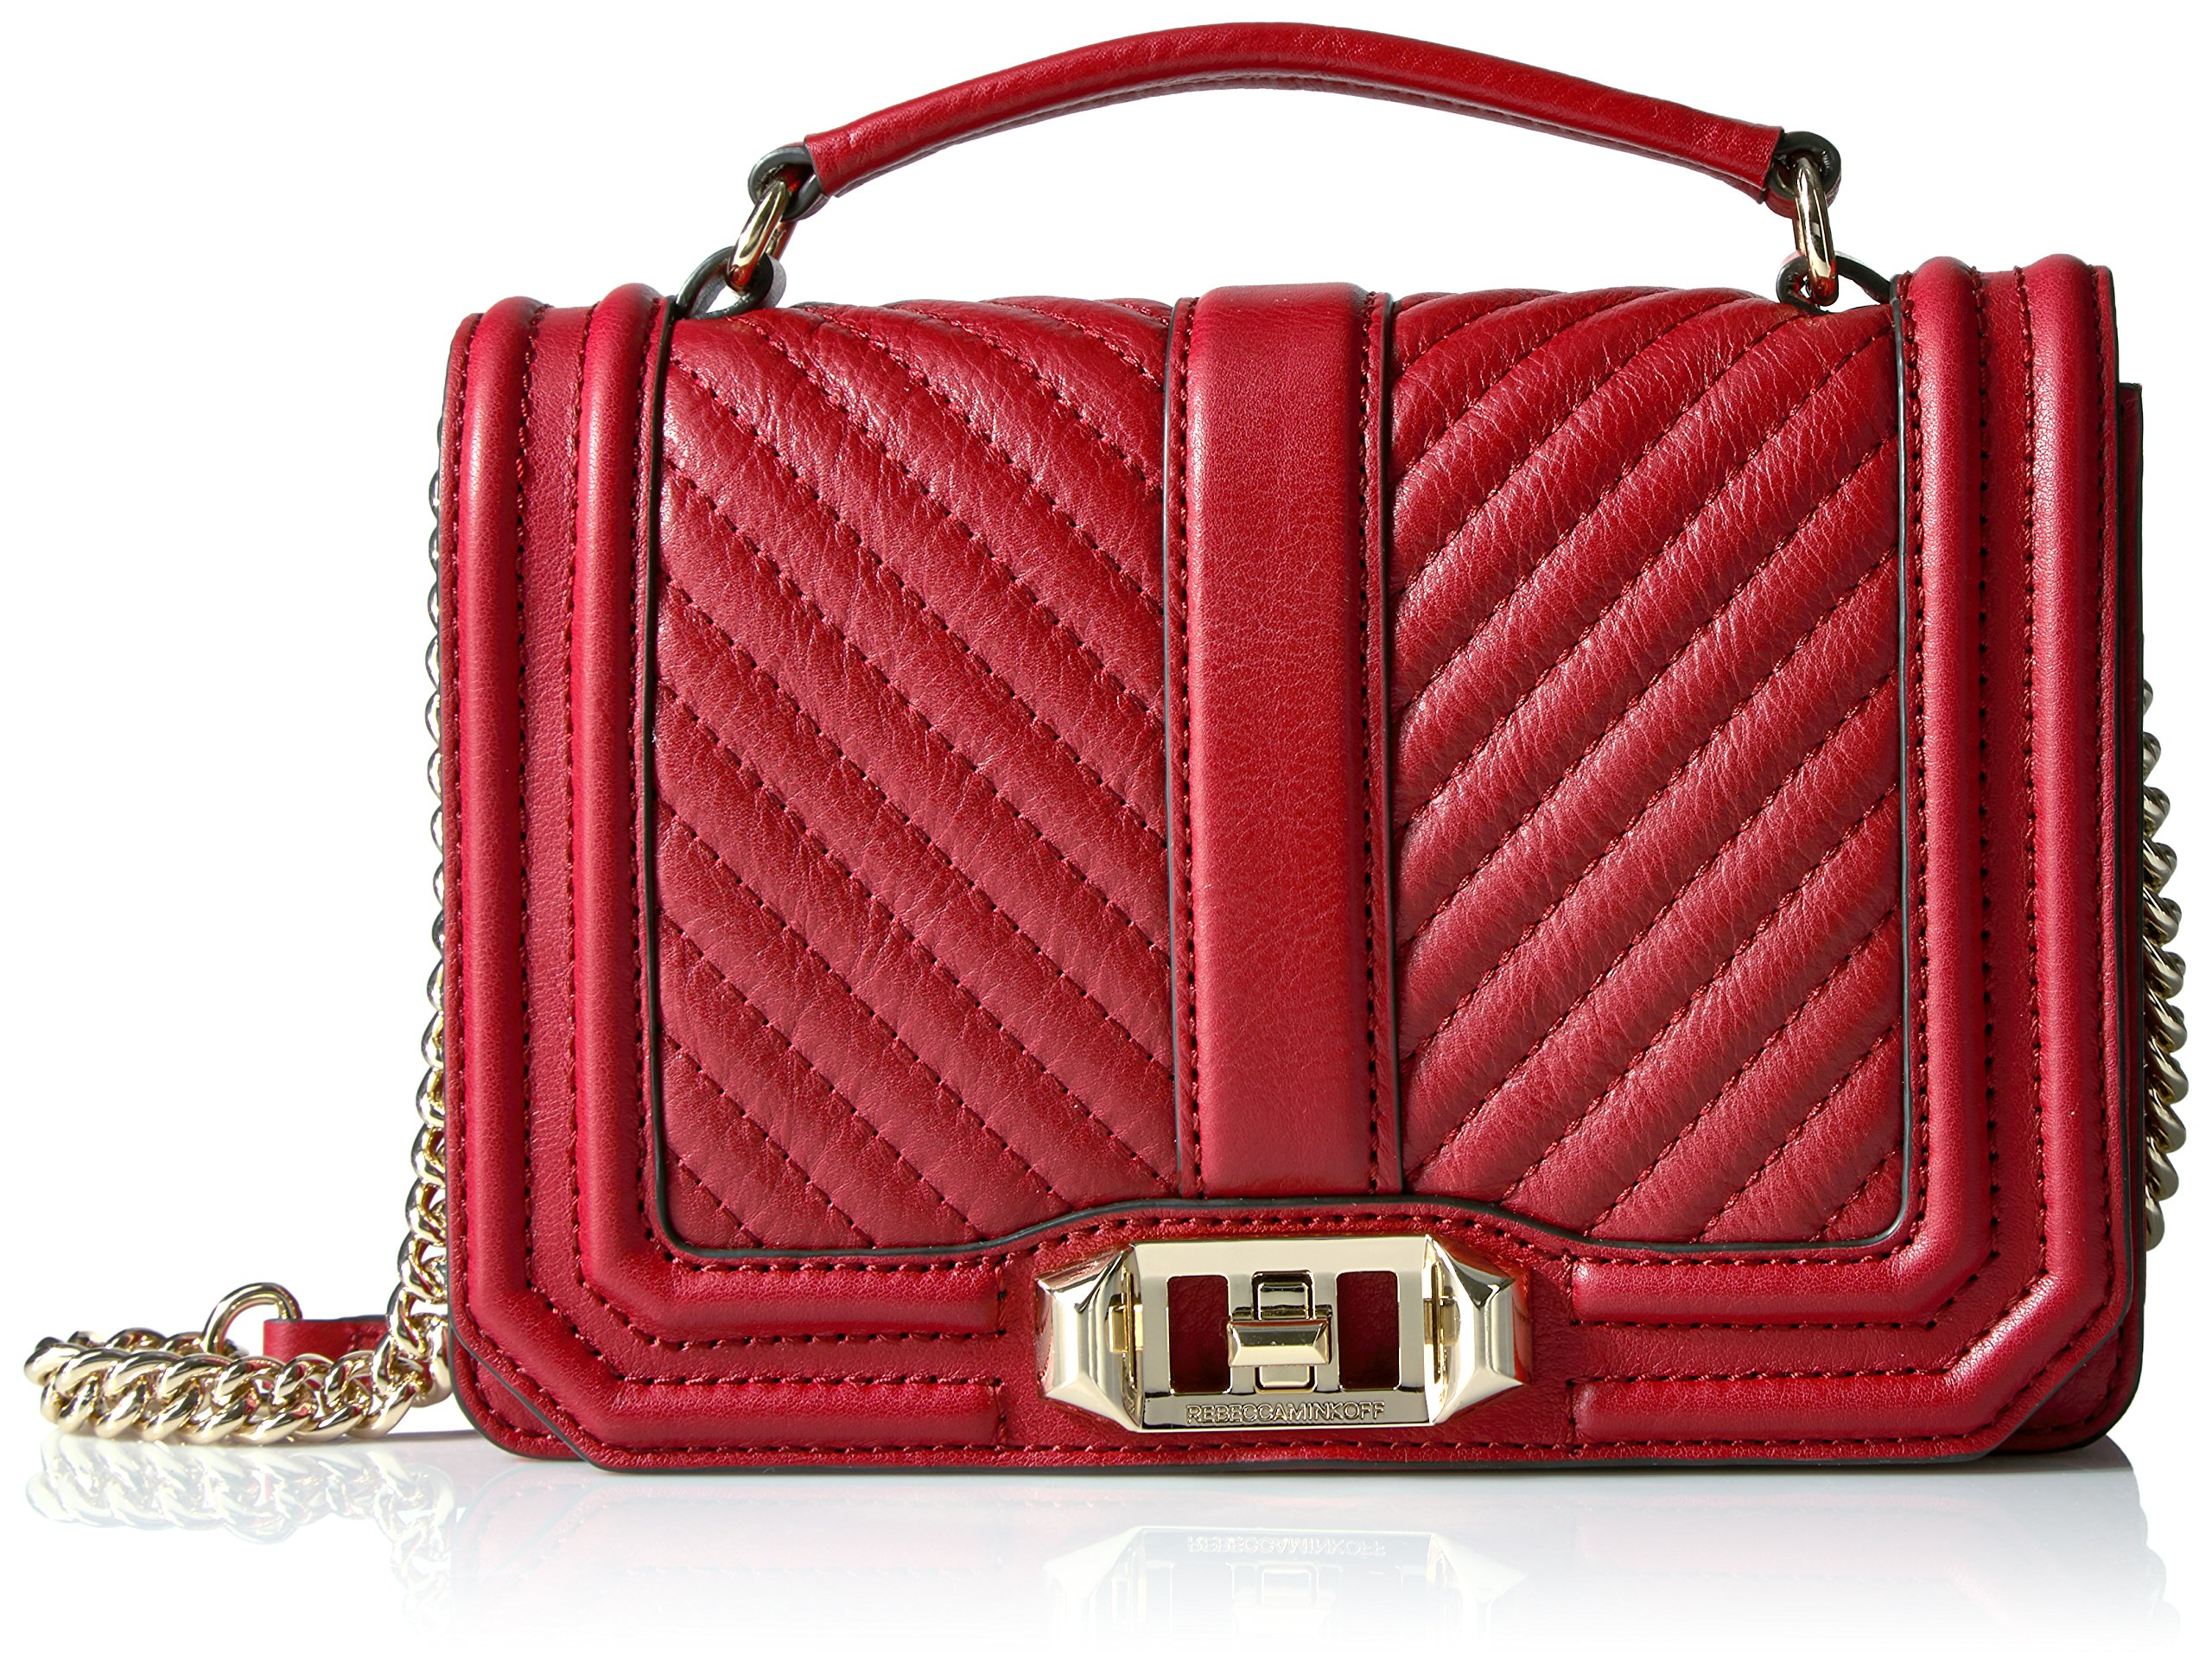 Rebecca Minkoff Chevron Quilted Small Love Crossbody with Top Handle, Deep Red by Rebecca Minkoff (Image #1)